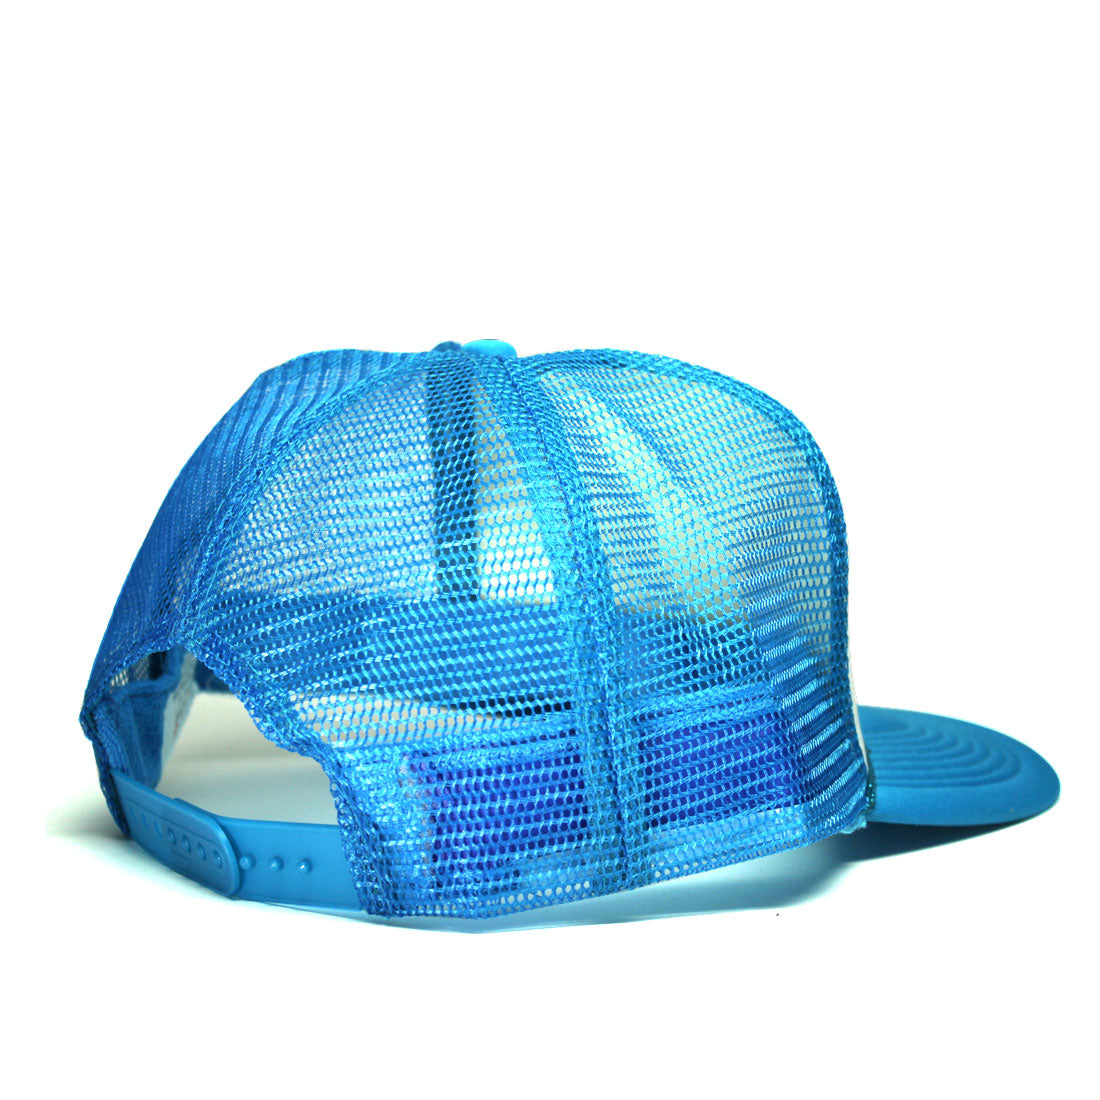 Back of a blue and white trucker hat | RIZNWILD